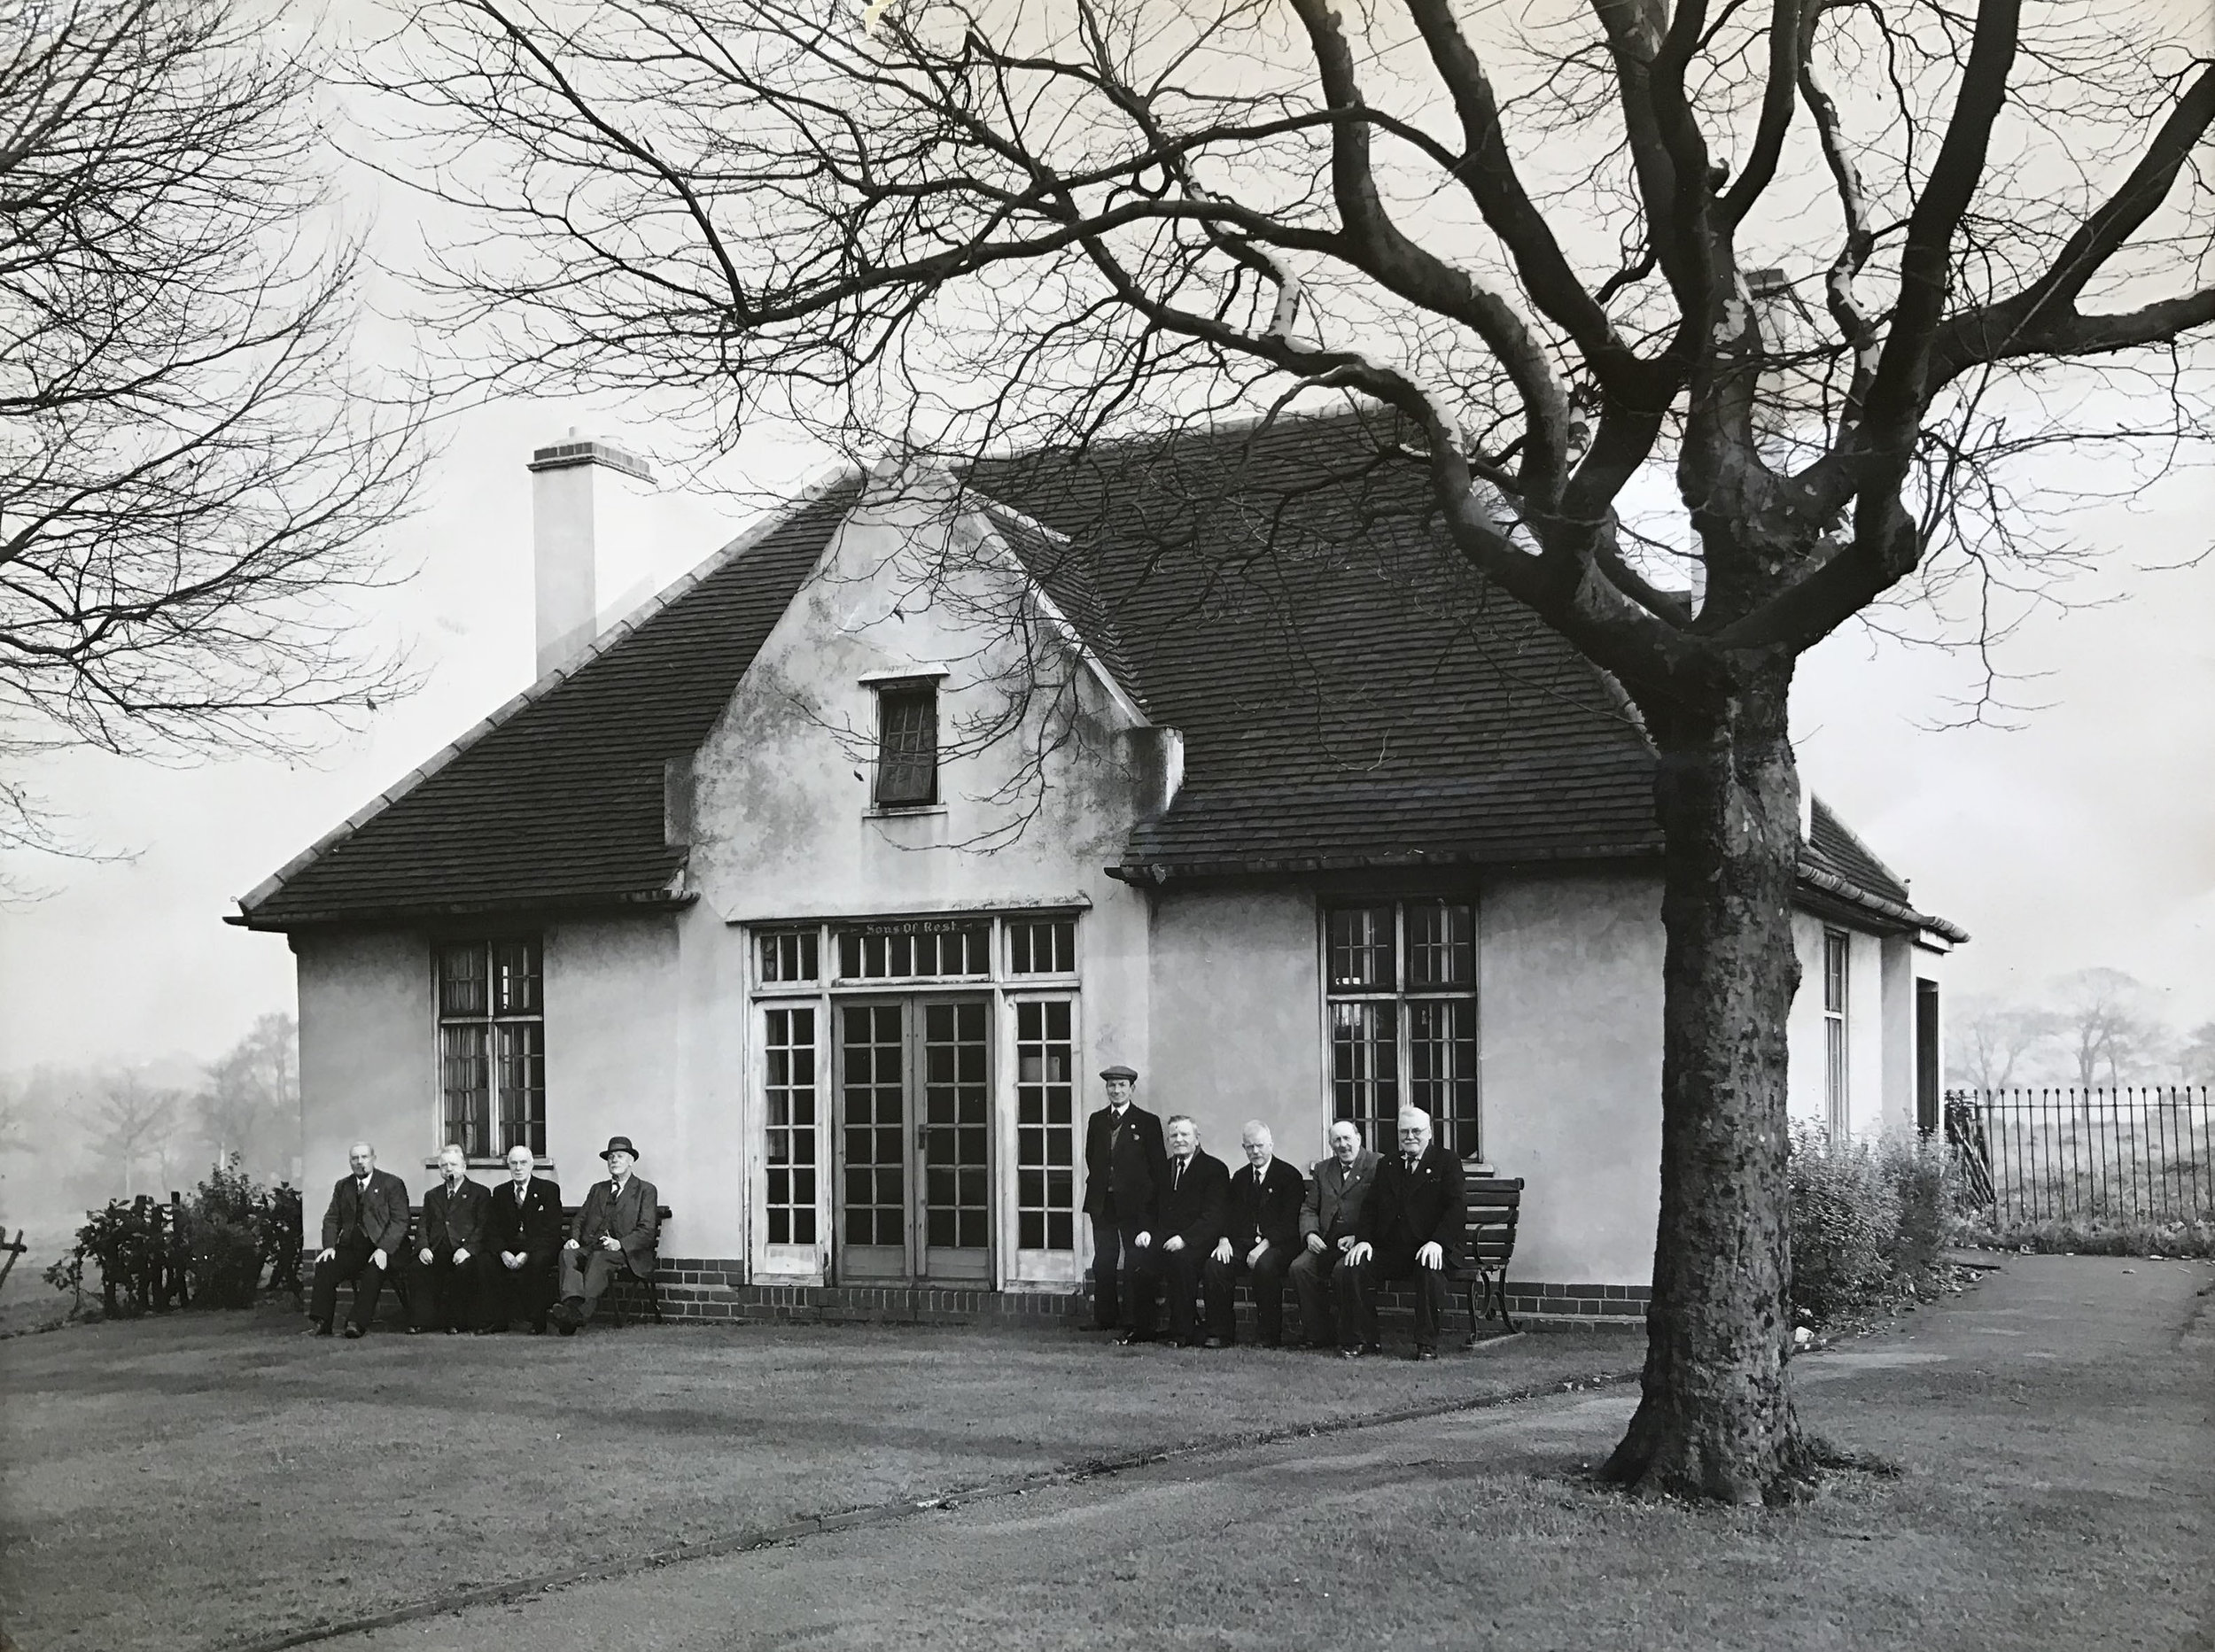 SONS OF REST BUILDING in Handsworth Park